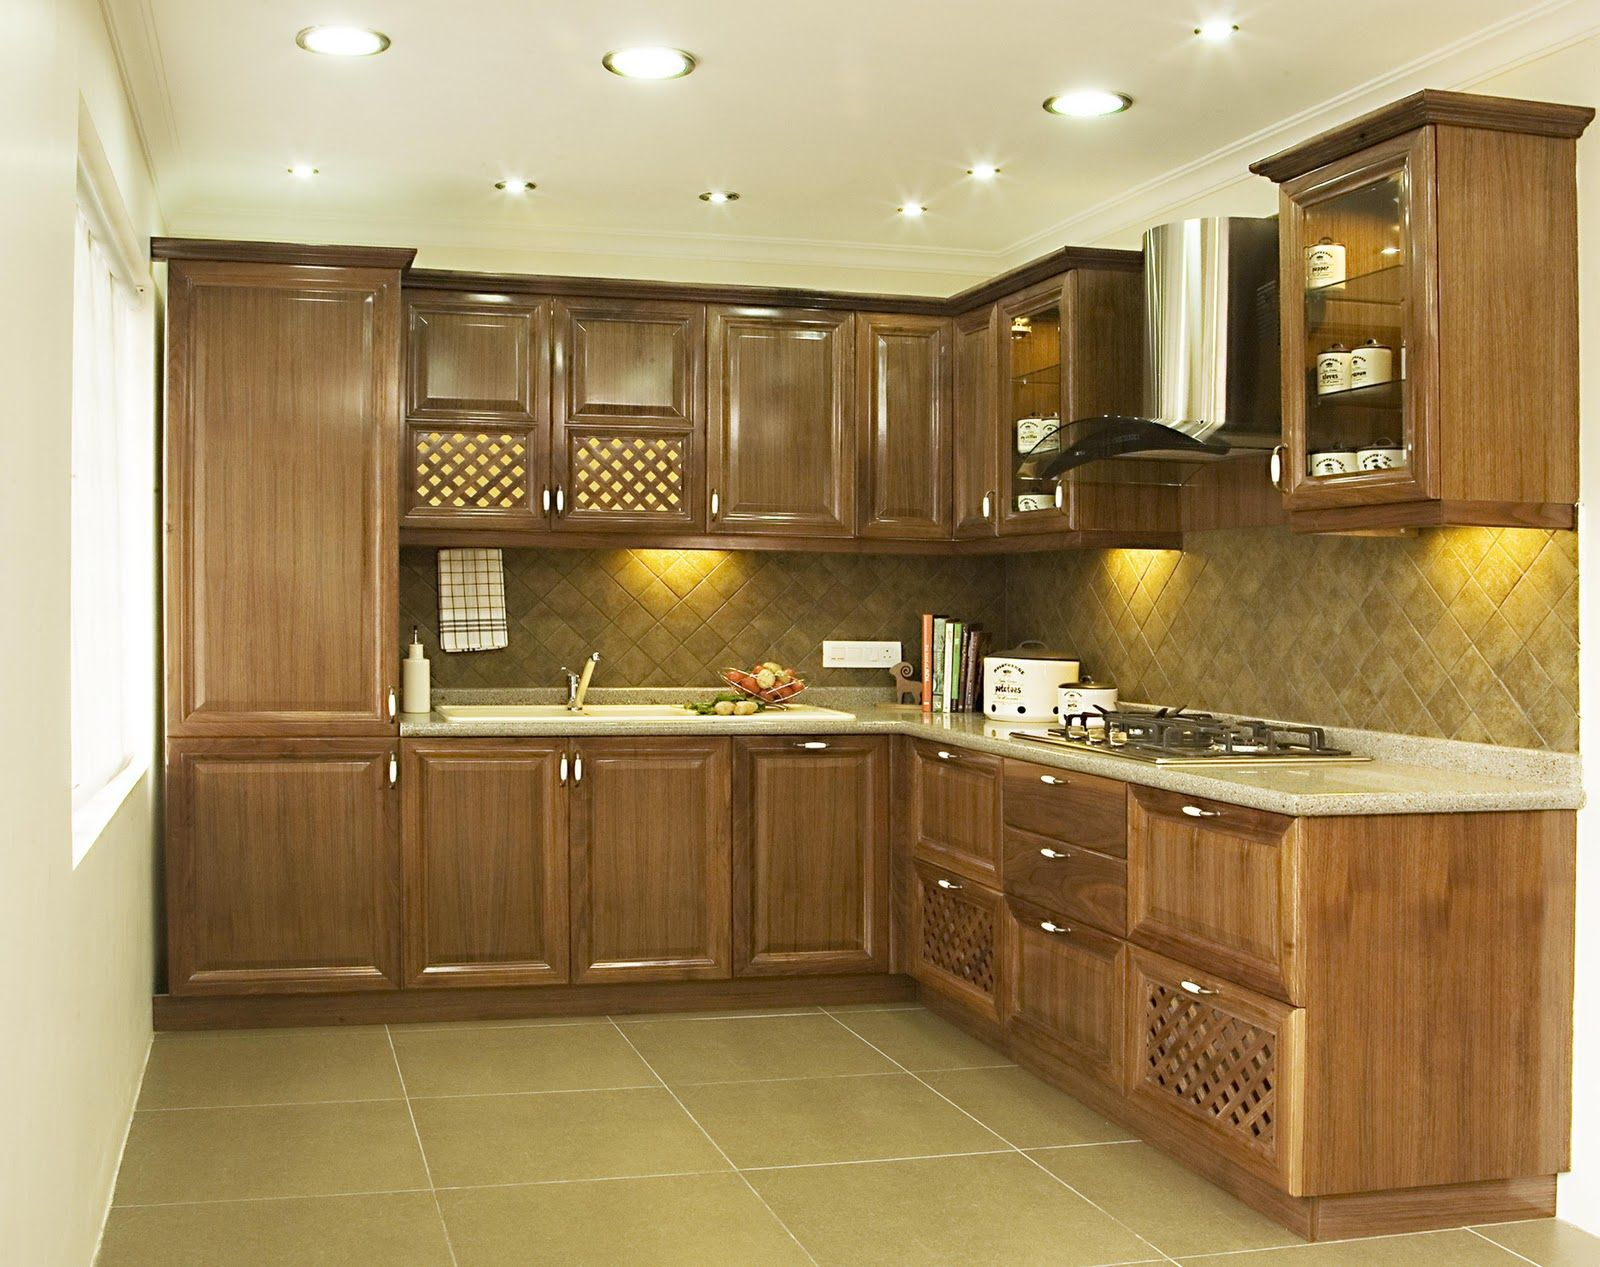 3d Kitchen Design Software Download Free   Http://sapuru.com/3d Kitchen  Design Software Download Free/